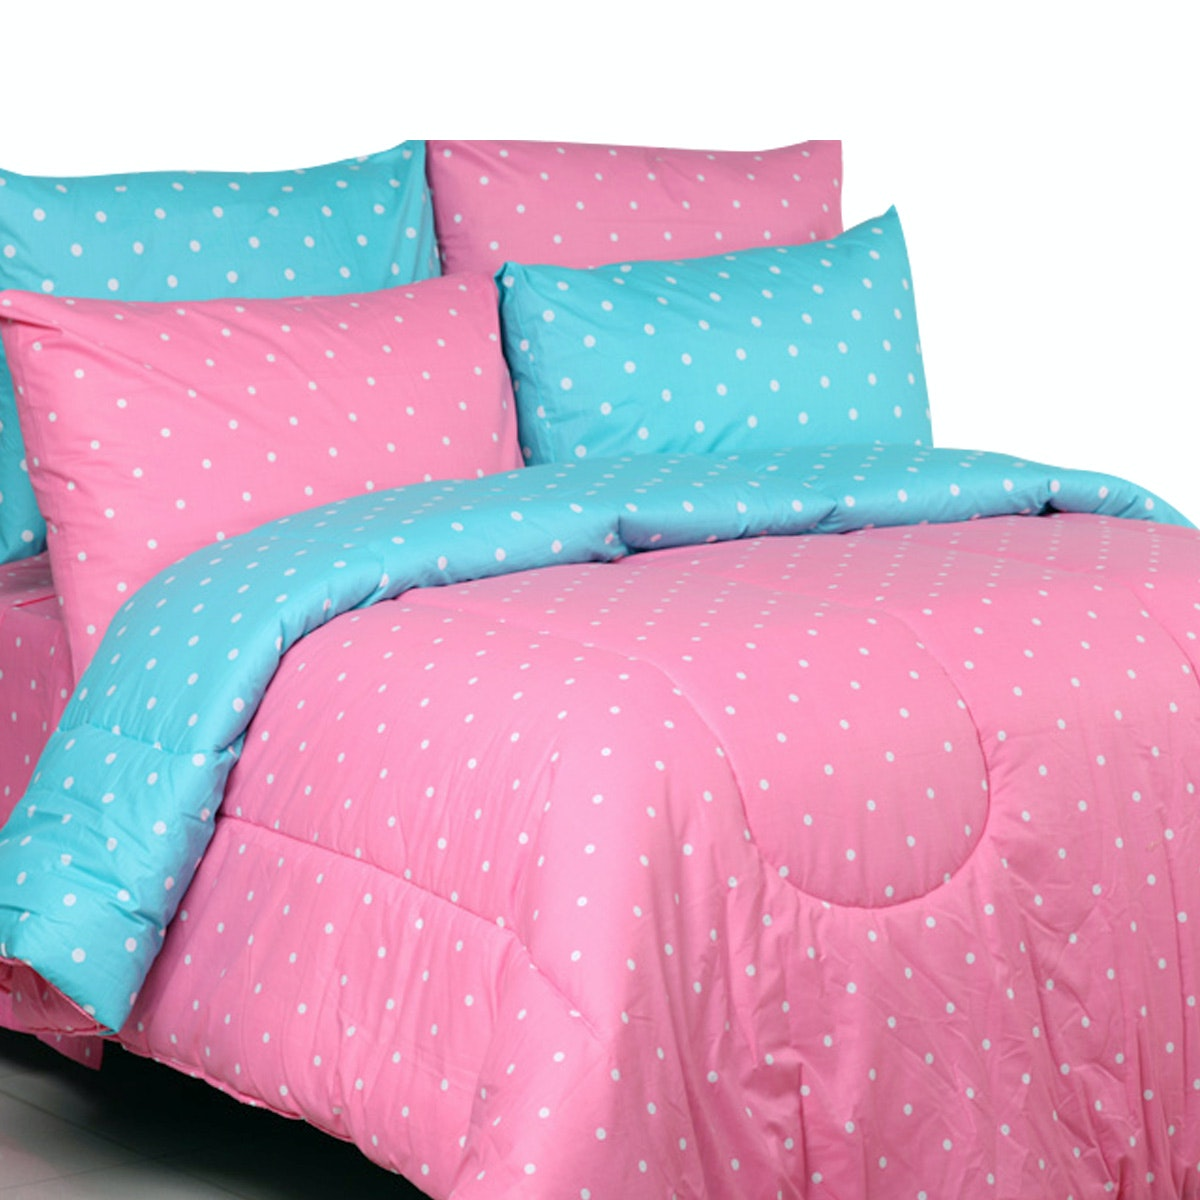 Sierra Bed Cover Dan Sprei Dottie Candy Mix Dottie Tosca 200x200